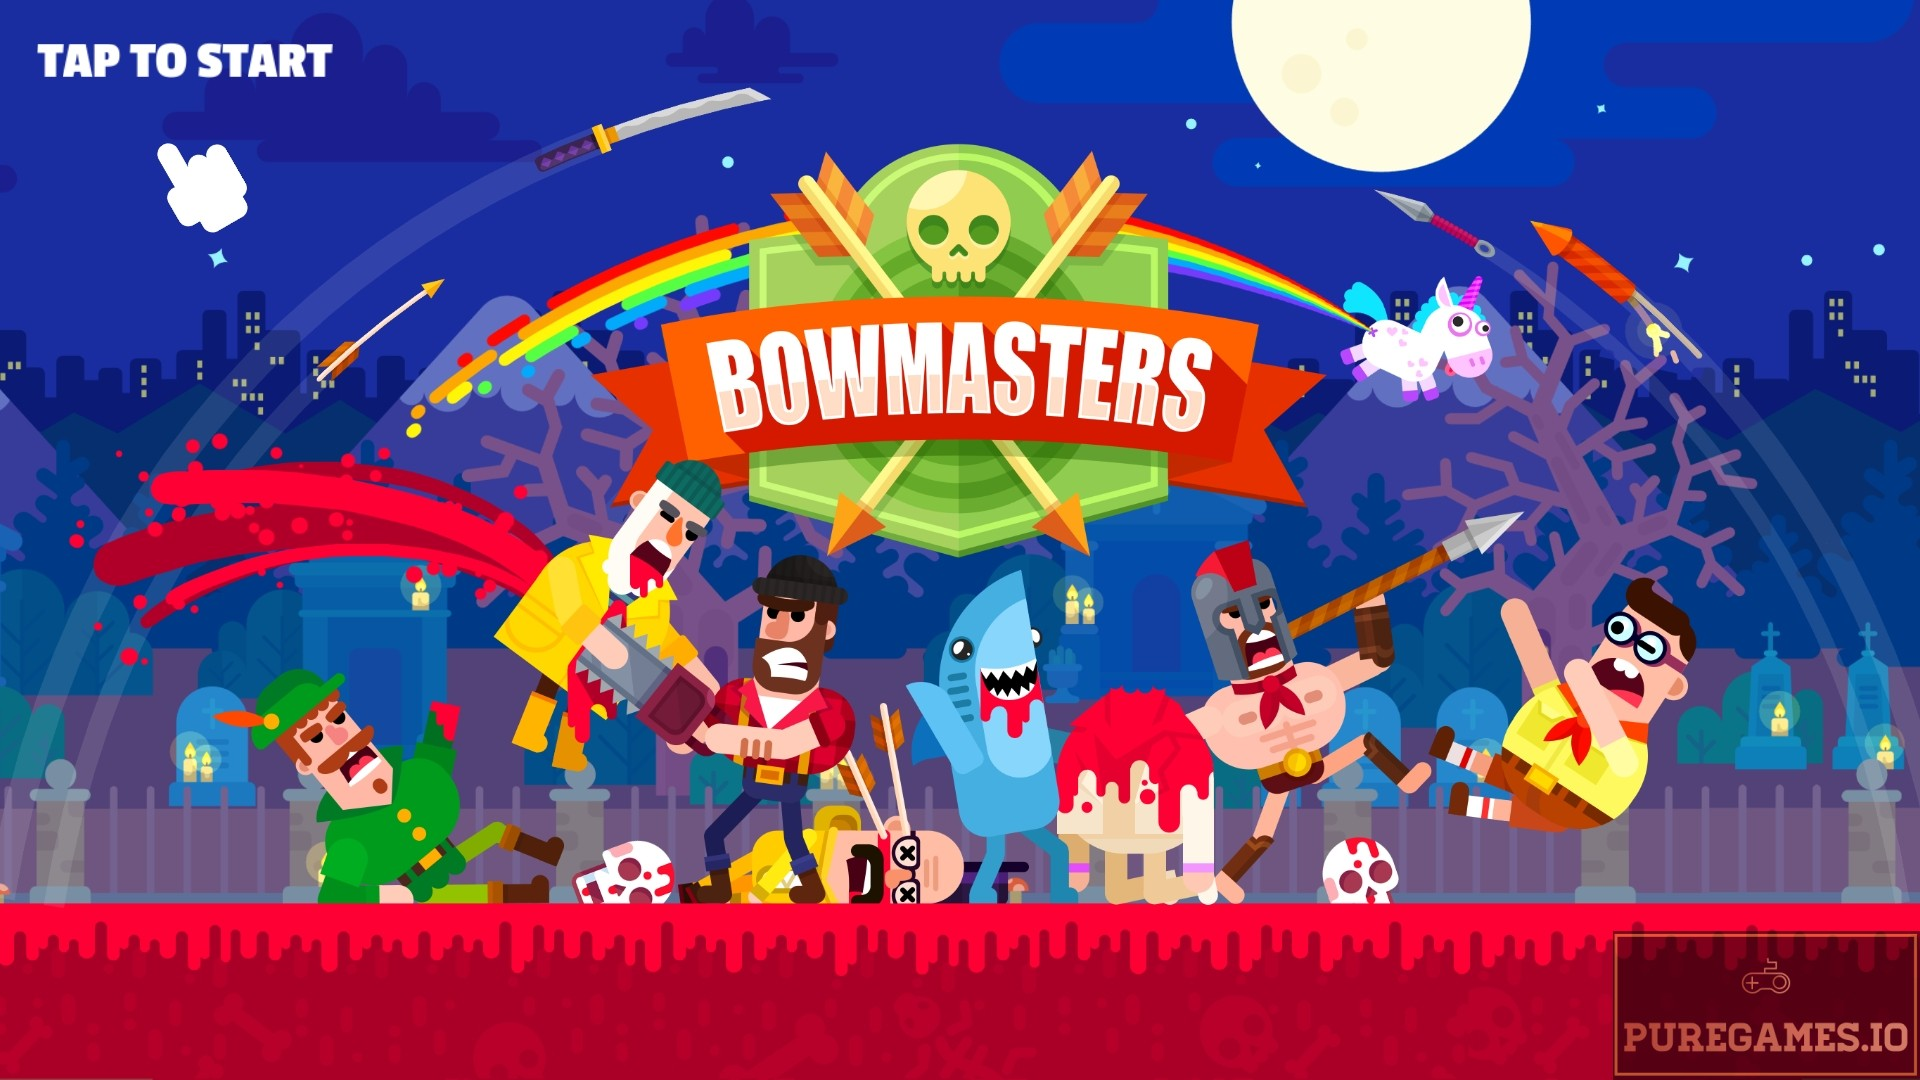 Download Bowmasters APK - For Android/iOS 10